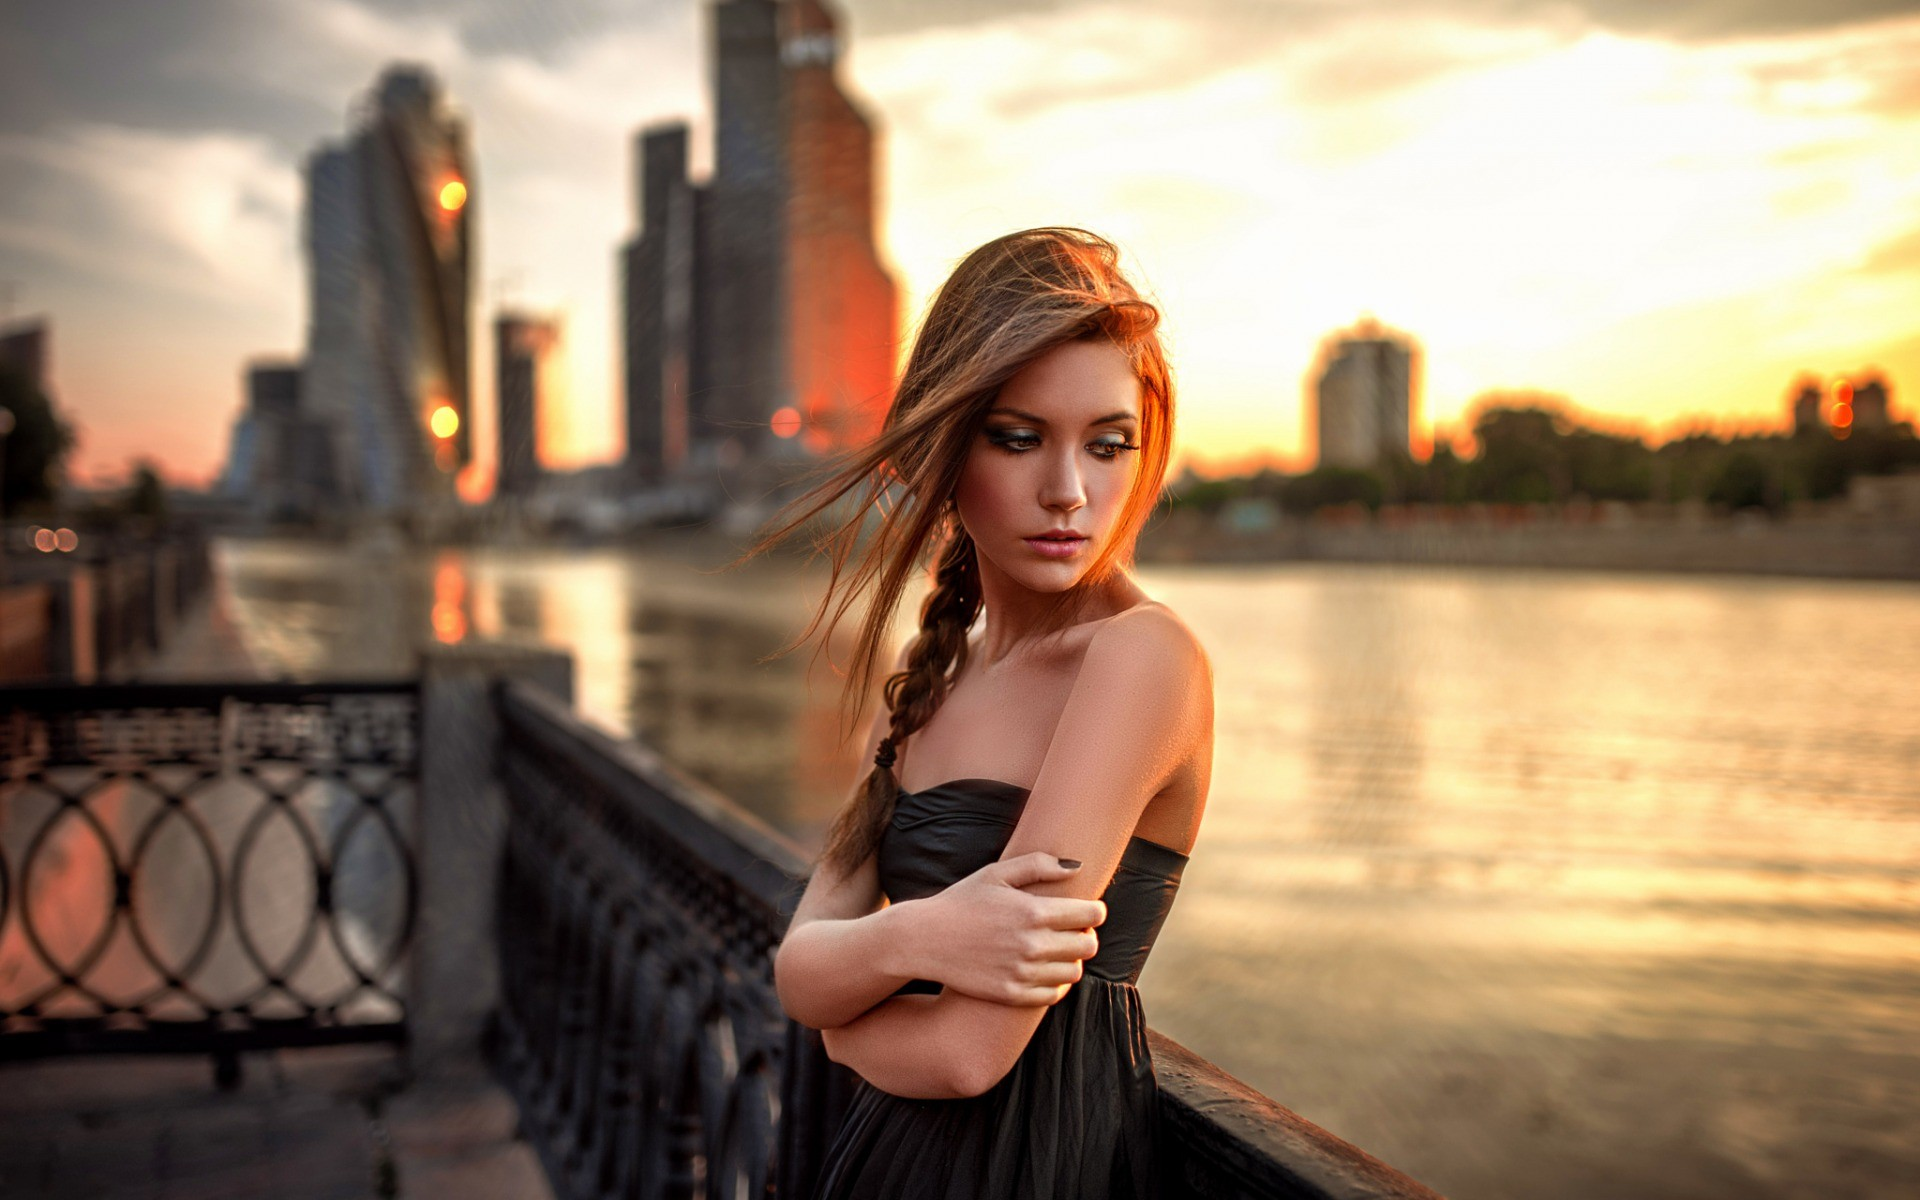 People 1920x1200 women women outdoors redhead portrait bare shoulders black dress depth of field looking away open mouth long hair sunset fence city Georgy Chernyadyev blonde brunette model closed Zero Figure building river Ksenia Kokoreva Russian